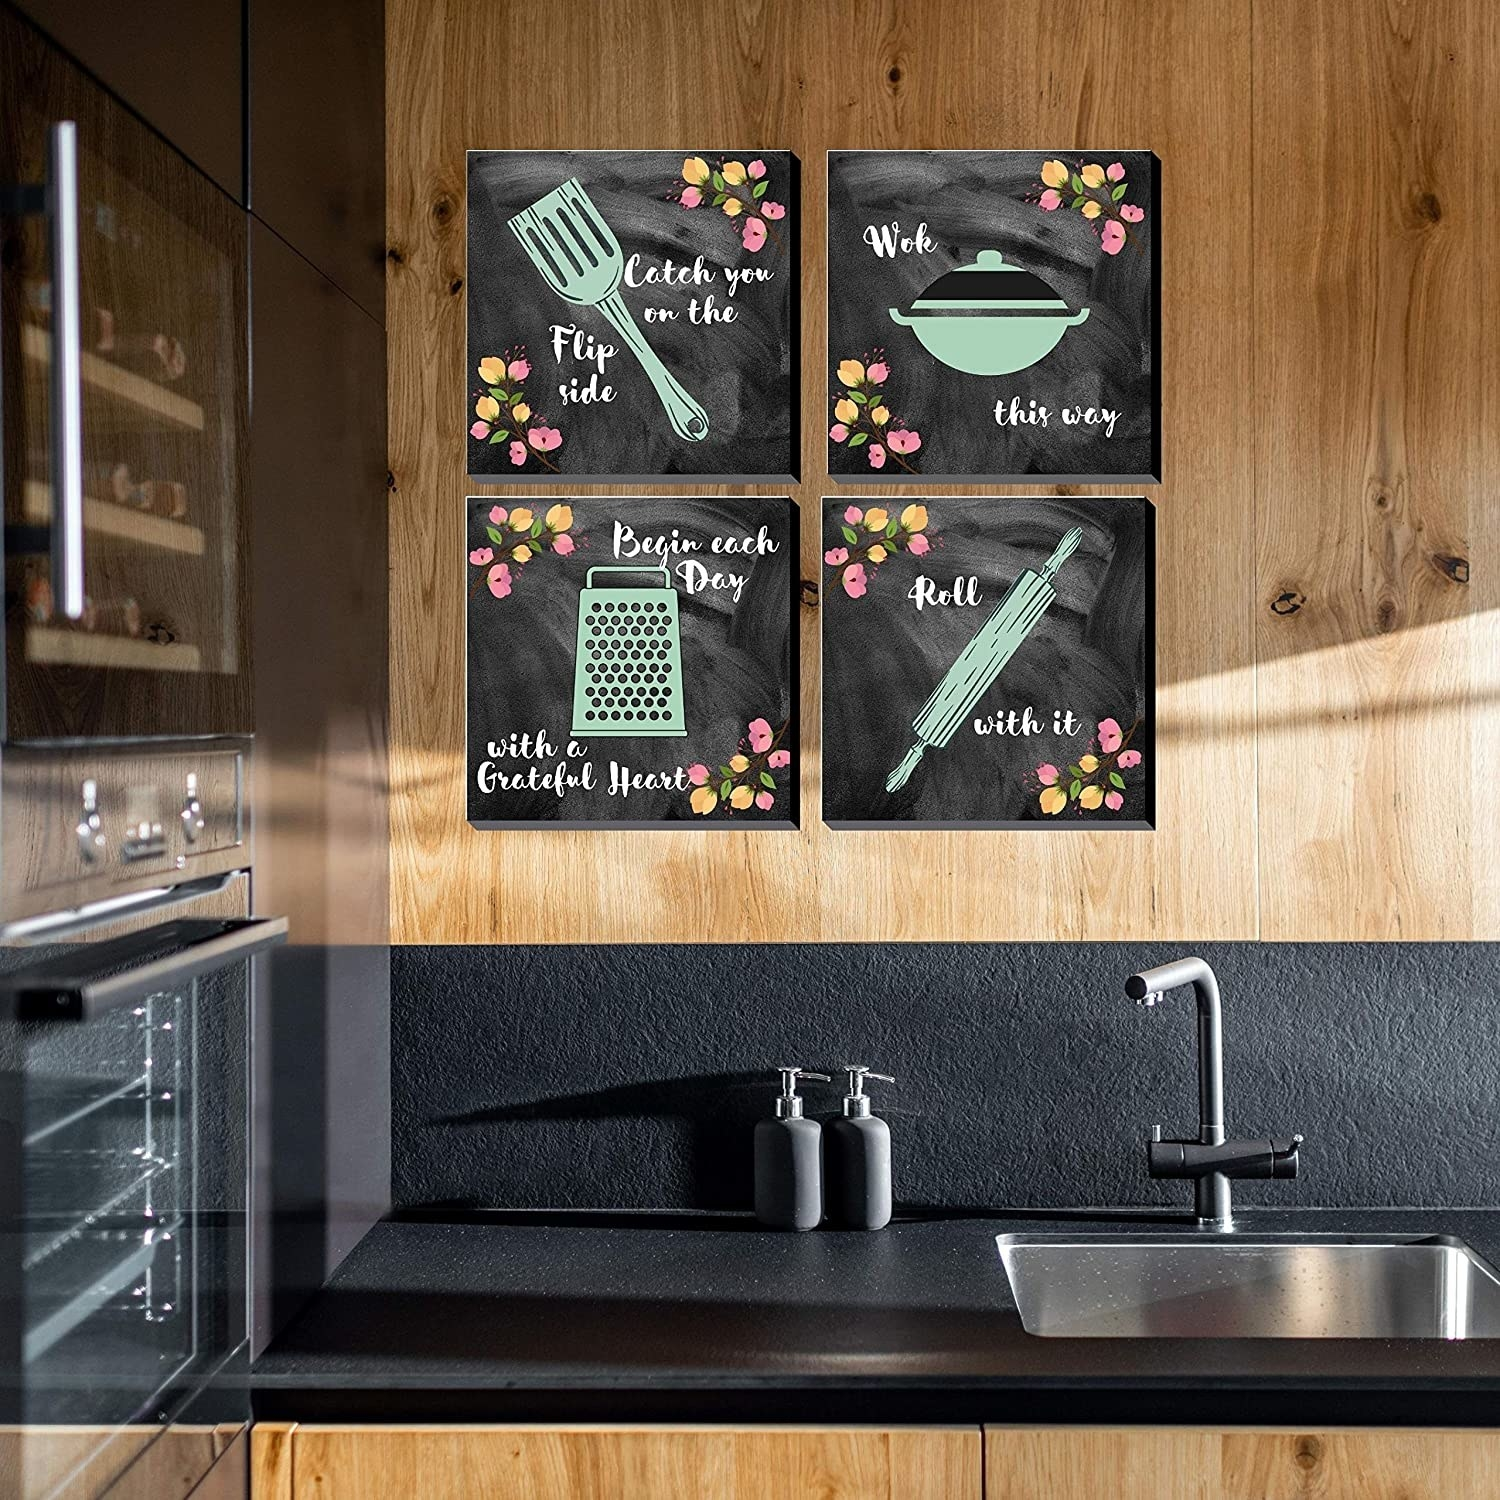 """4 chalkboard frames hung up on a kitchen wall. They have punny quotes on them like, """"Catch you on the flip side"""", """"Wok this way"""", """"Begin each day with a grateful heart"""", and """"Roll with it""""."""